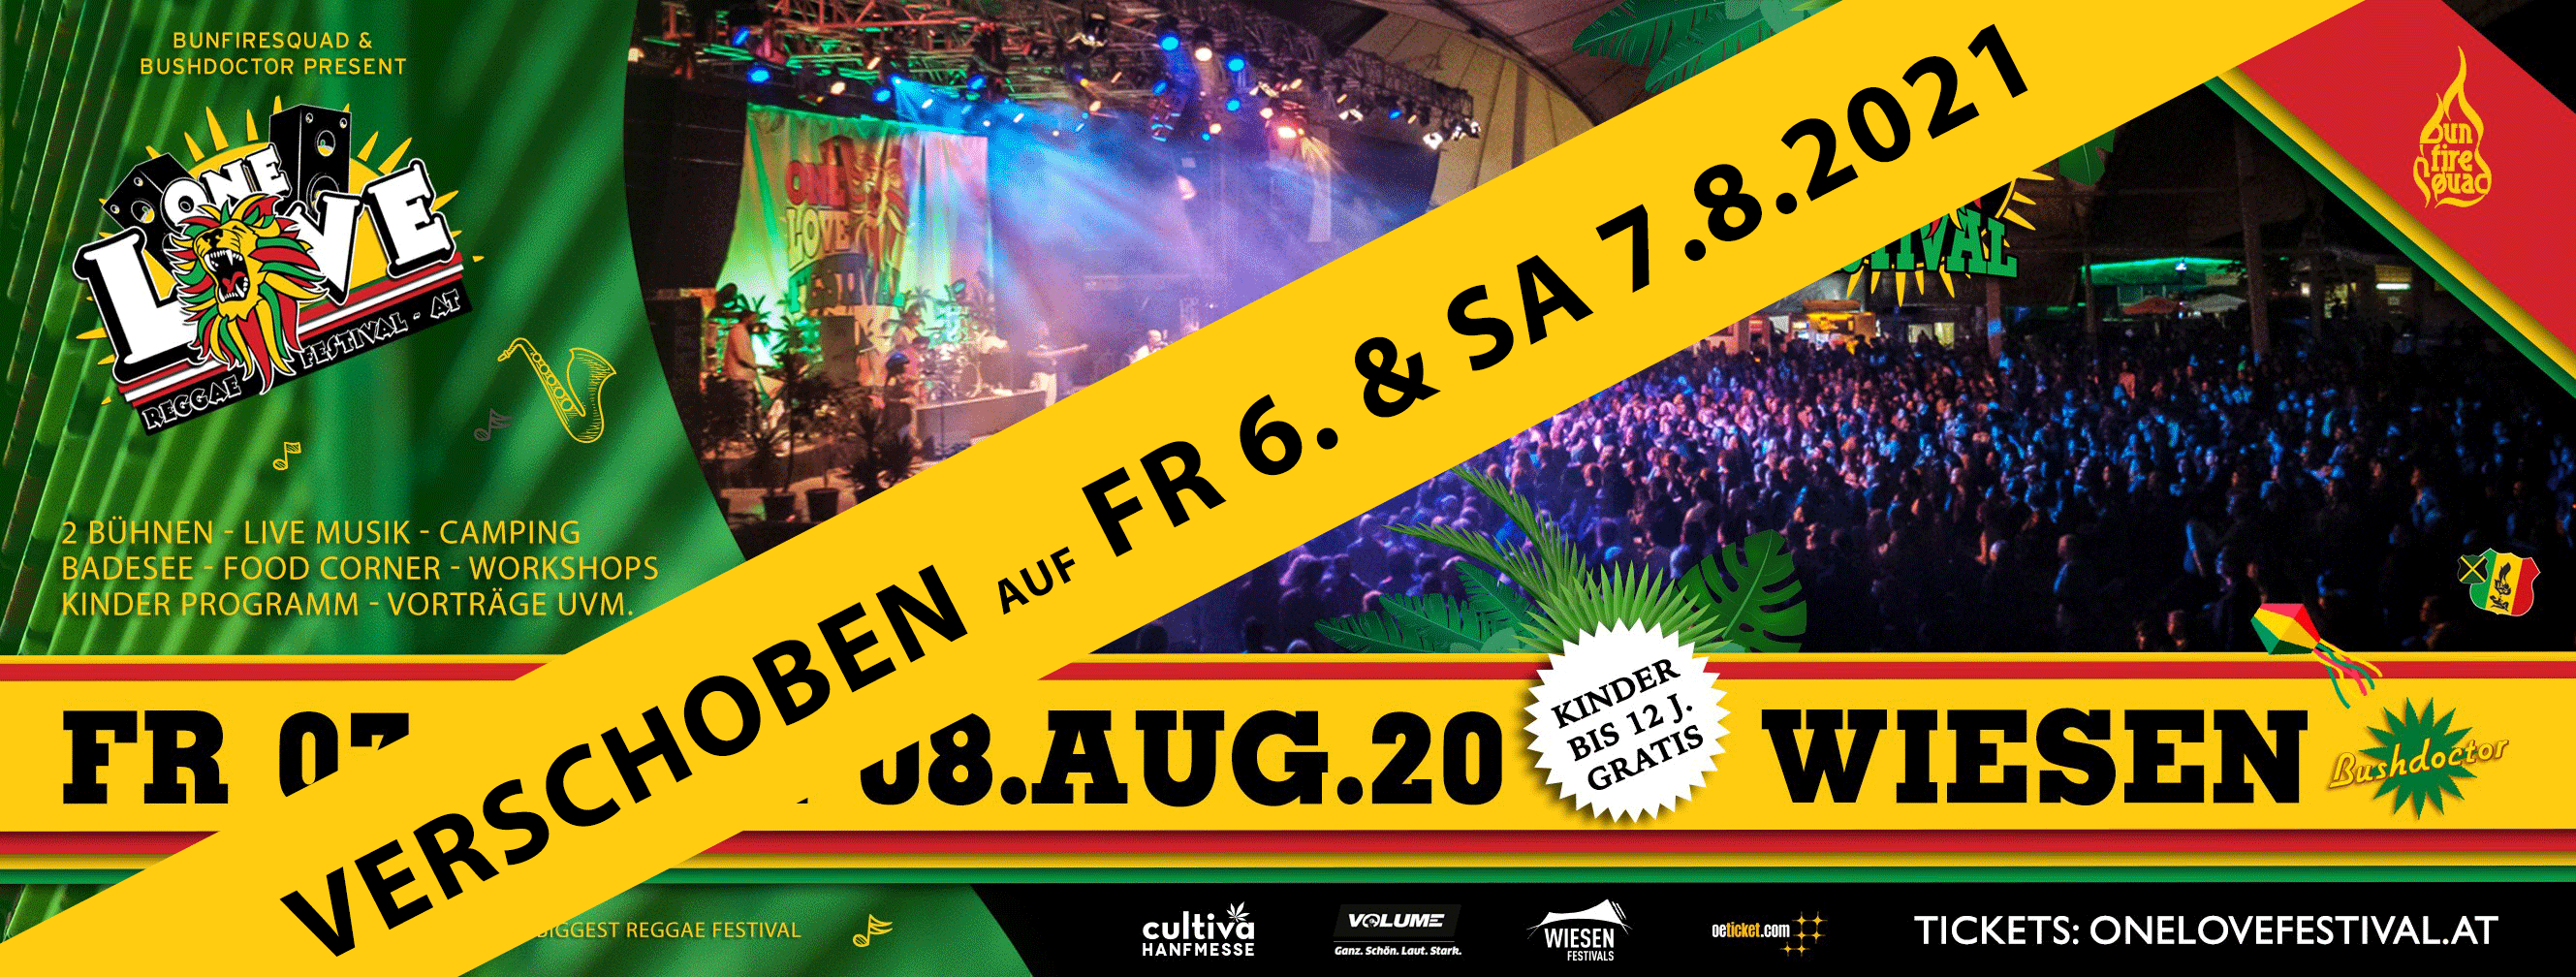 One Love Festival 2020 am 7. August 2020 @ Festivalgelände Wiesen.